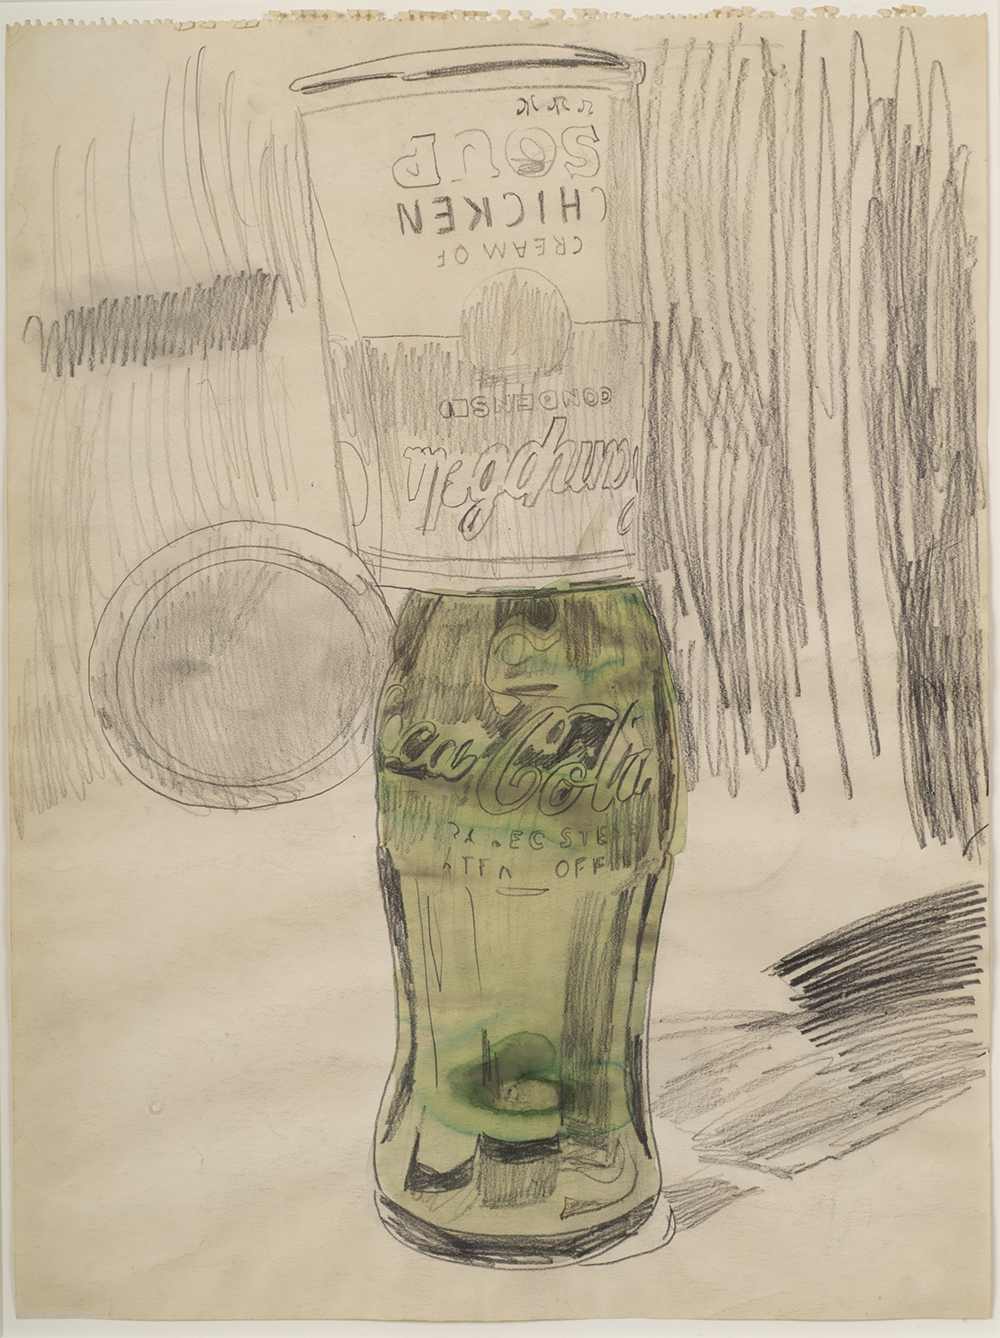 Andy Warhol (1928–1987), Campbell's Soup Can over Coke Bottle, 1962. Graphite and watercolor on pa-per, 23 1⁄2 × 17 3⁄4 in. (59.7 × 45.1 cm). The Brant Foundation, Greenwich, CT © The Andy Warhol Foun-dation for the Visual Arts, Inc. / Artists Rights Society (ARS) New York